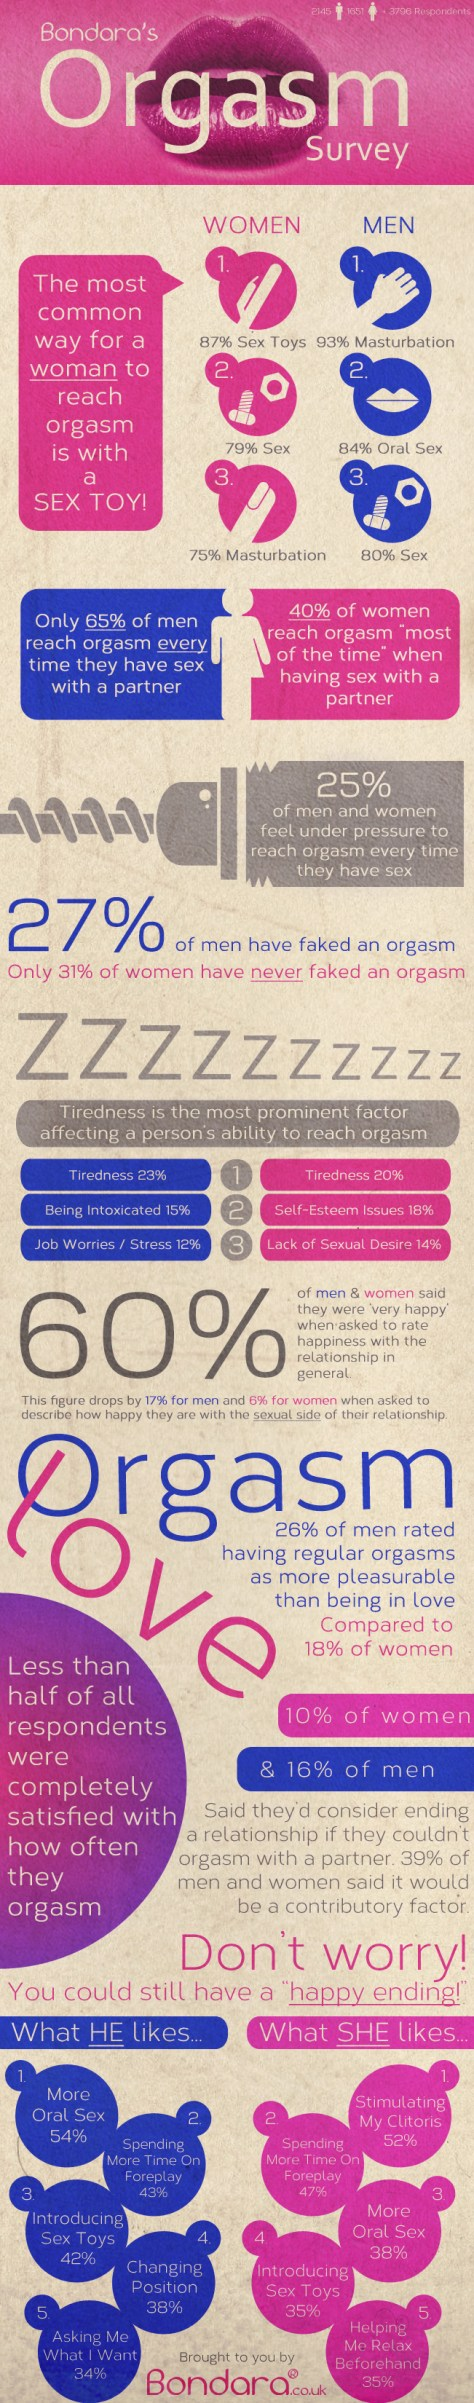 Orgasm Survey infographic2